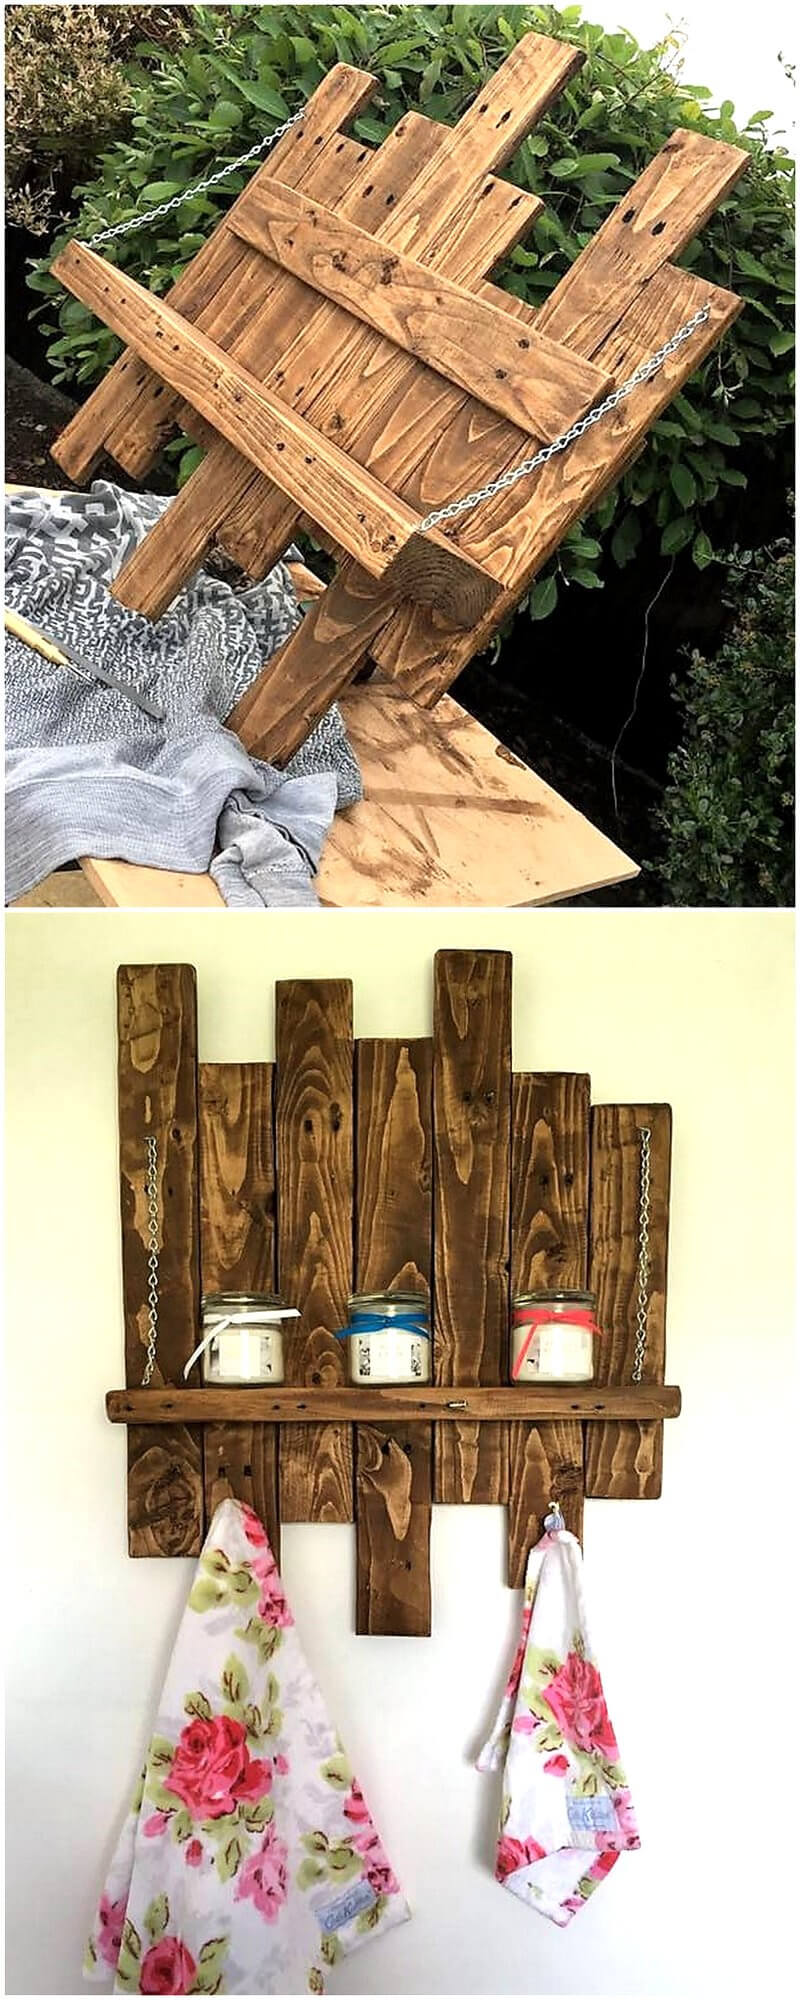 pallets shelving idea